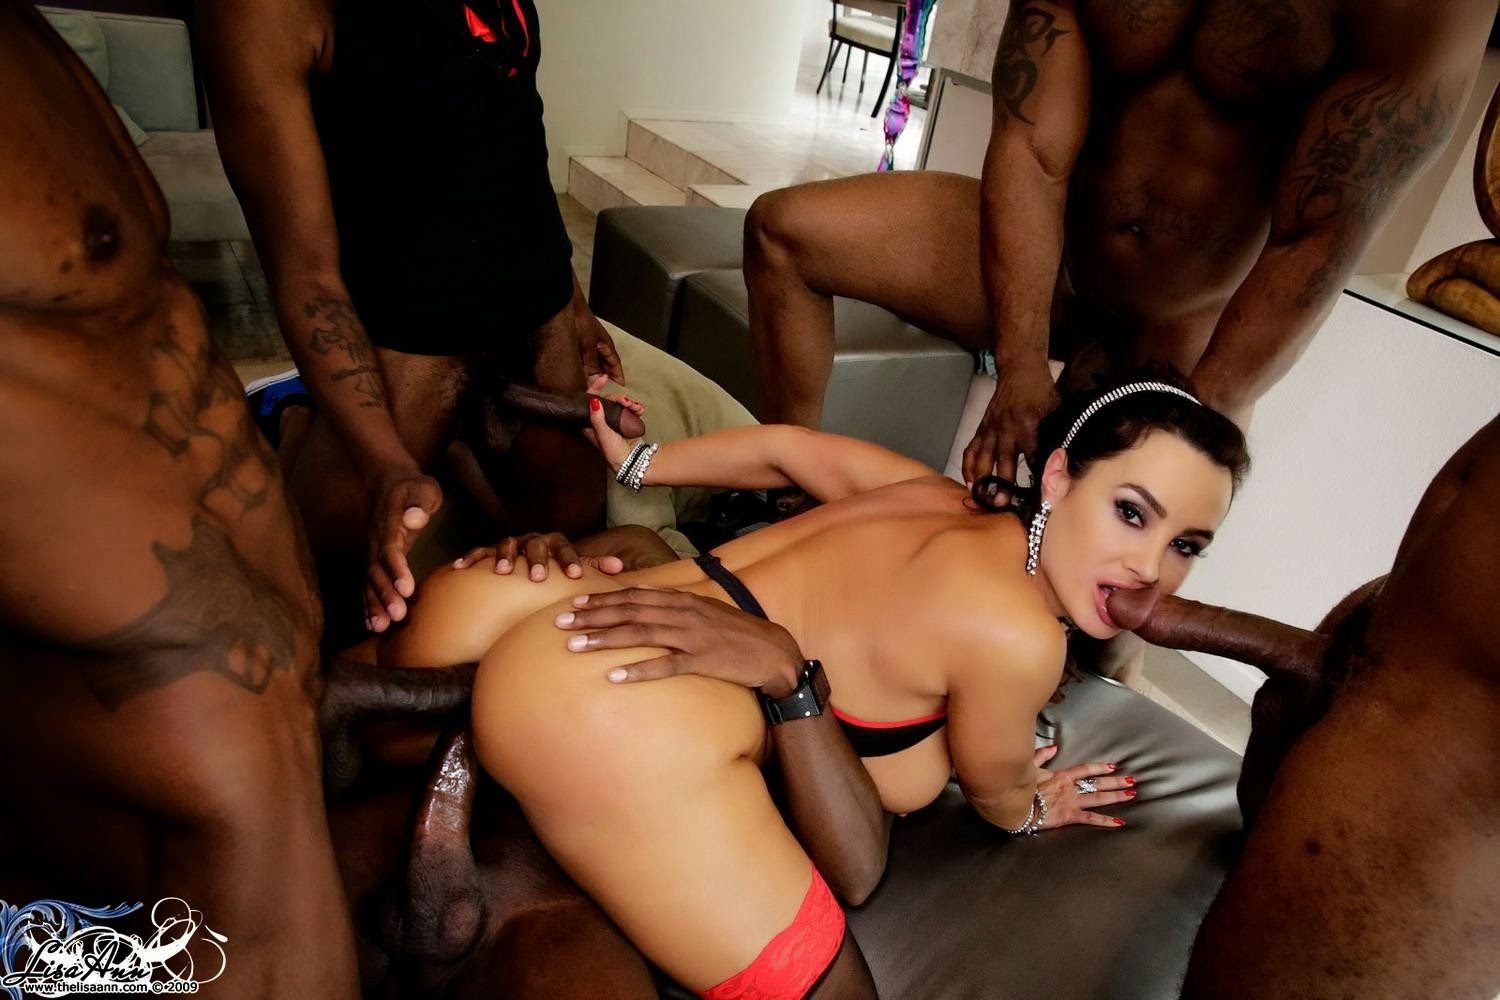 Sorry, not lisa ann black fucking remarkable, rather